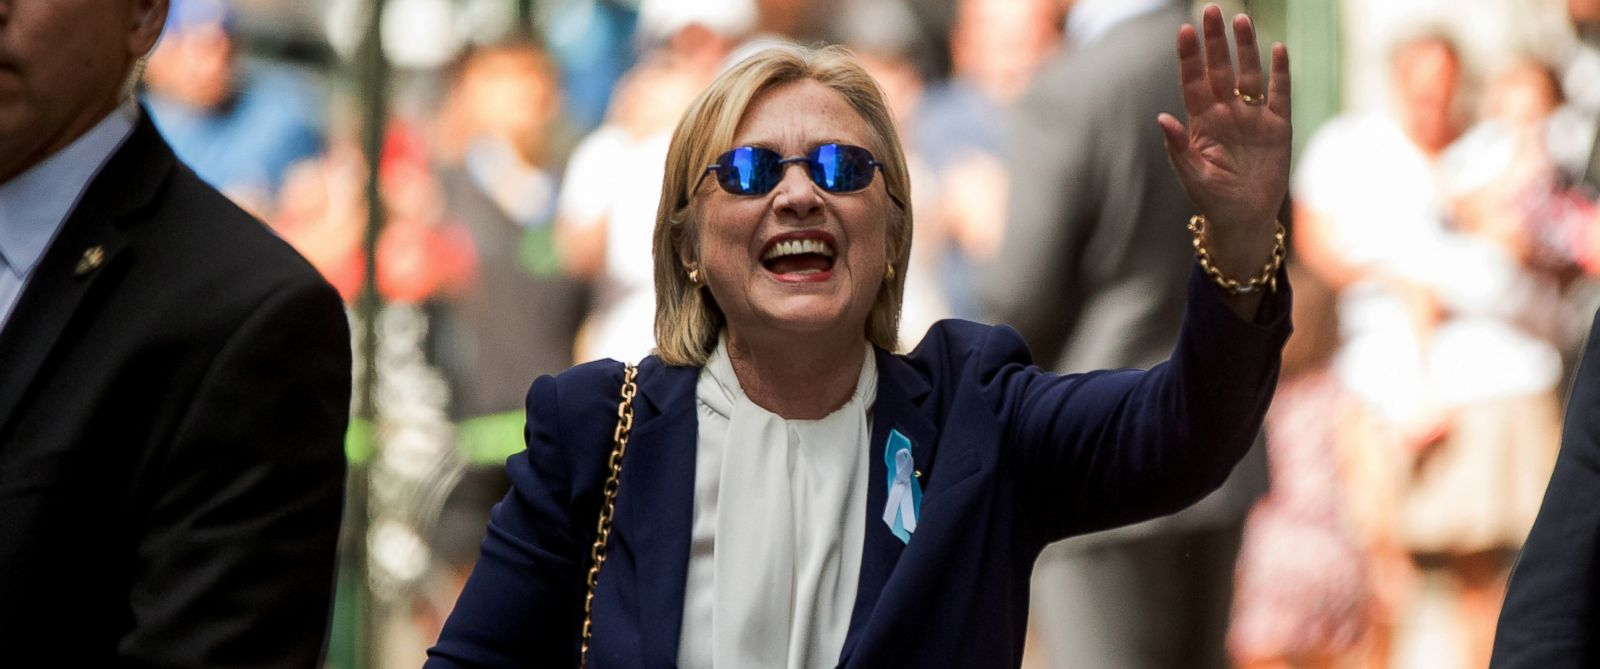 PHOTO: Democratic presidential candidate Hillary Clinton waves after leaving an apartment building in New York City, Sept. 11, 2016.